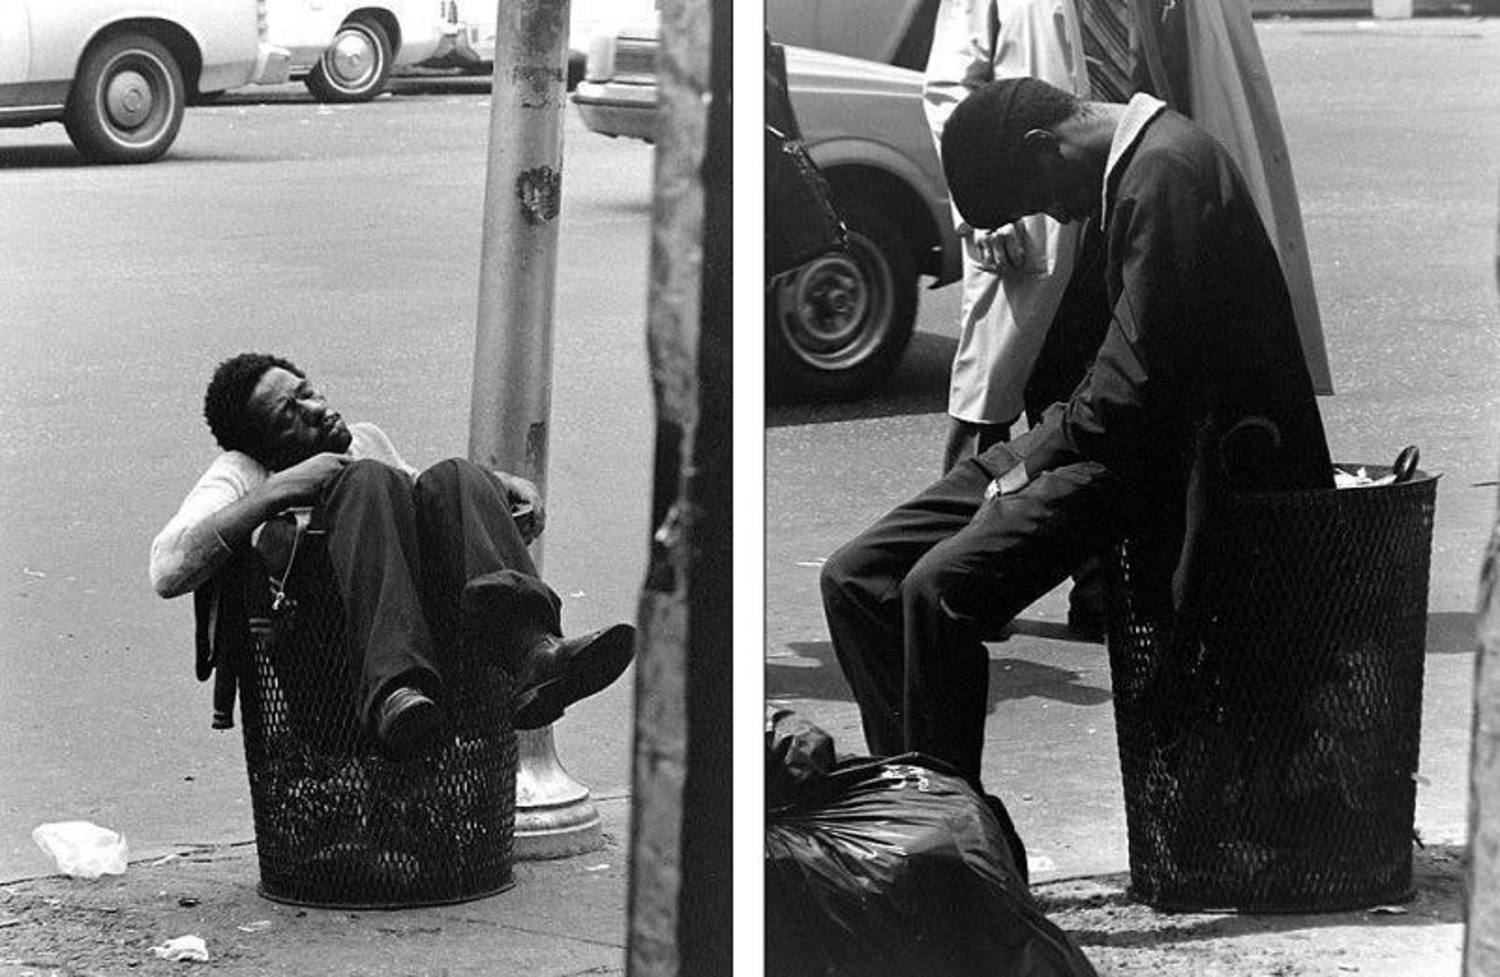 The homeless populations of Times Square and neighboring Port Authority skyrocketed during the 1970s and 1980s. Combined with the pervasiveness of the drug and sex enterprises, this proved to be a chaotic brew of ingredients for the area.